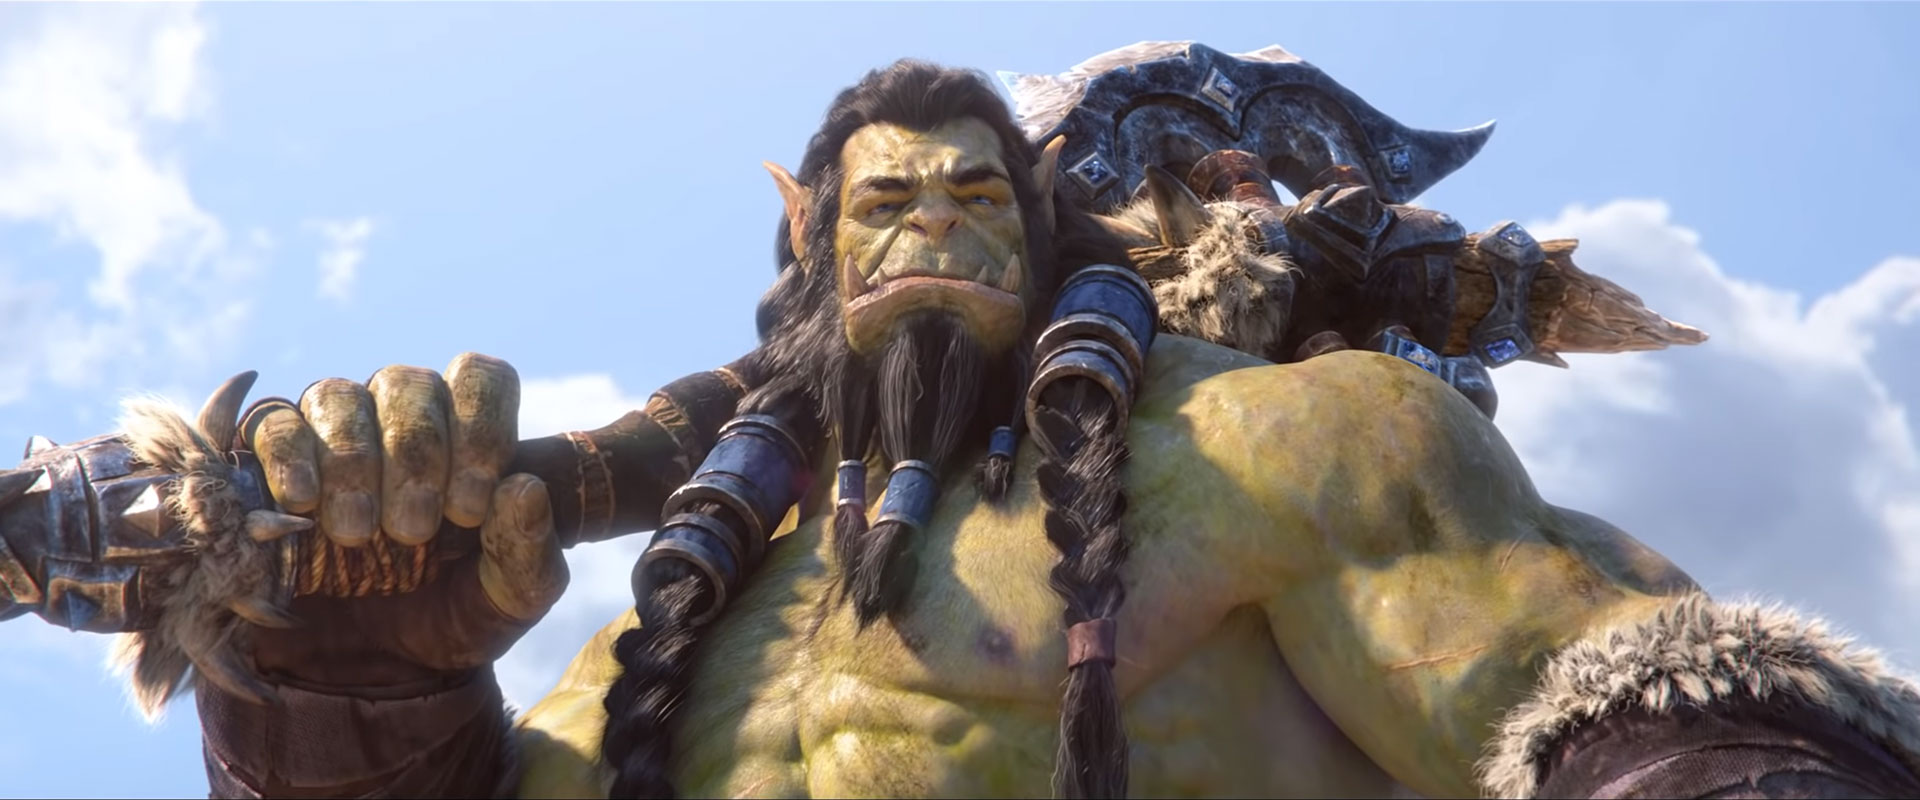 World Of Warcraft Quot Safe Haven Quot Cinematic Trailer